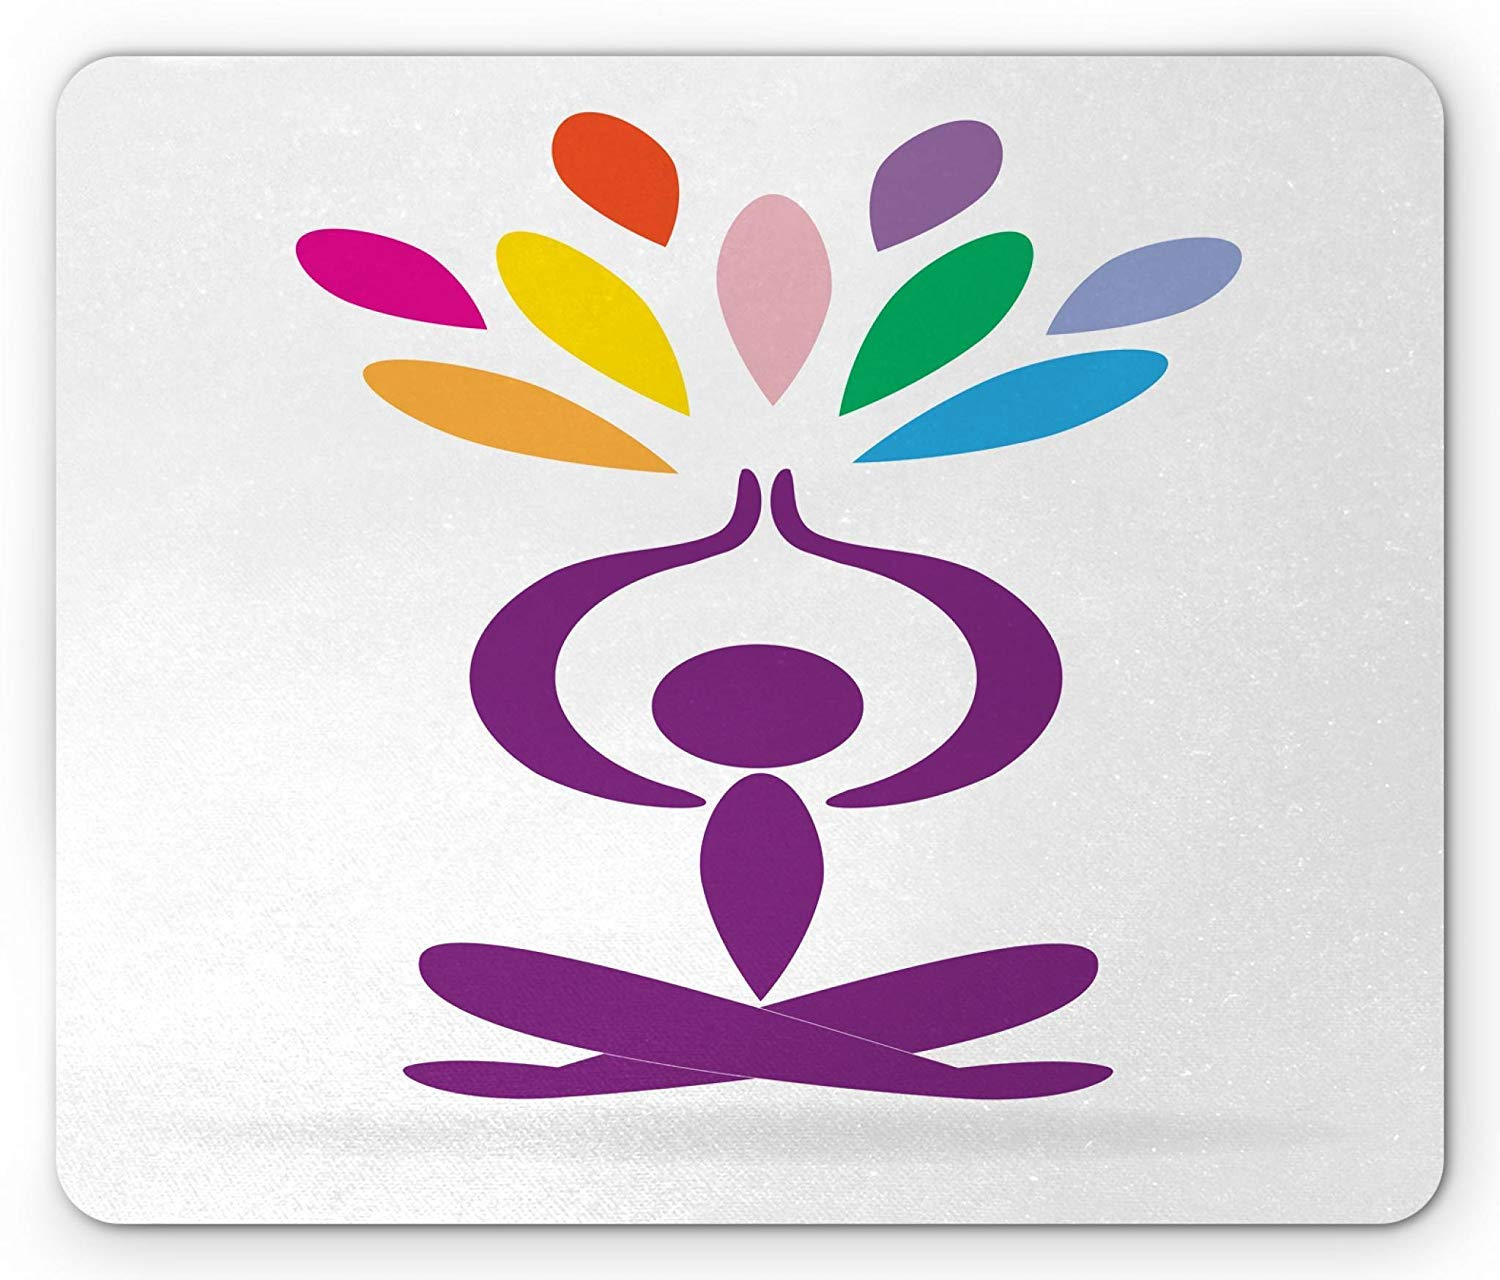 Xaceoiuu Yoga Mouse Pad, Meditation and Wellbeing Concept ...